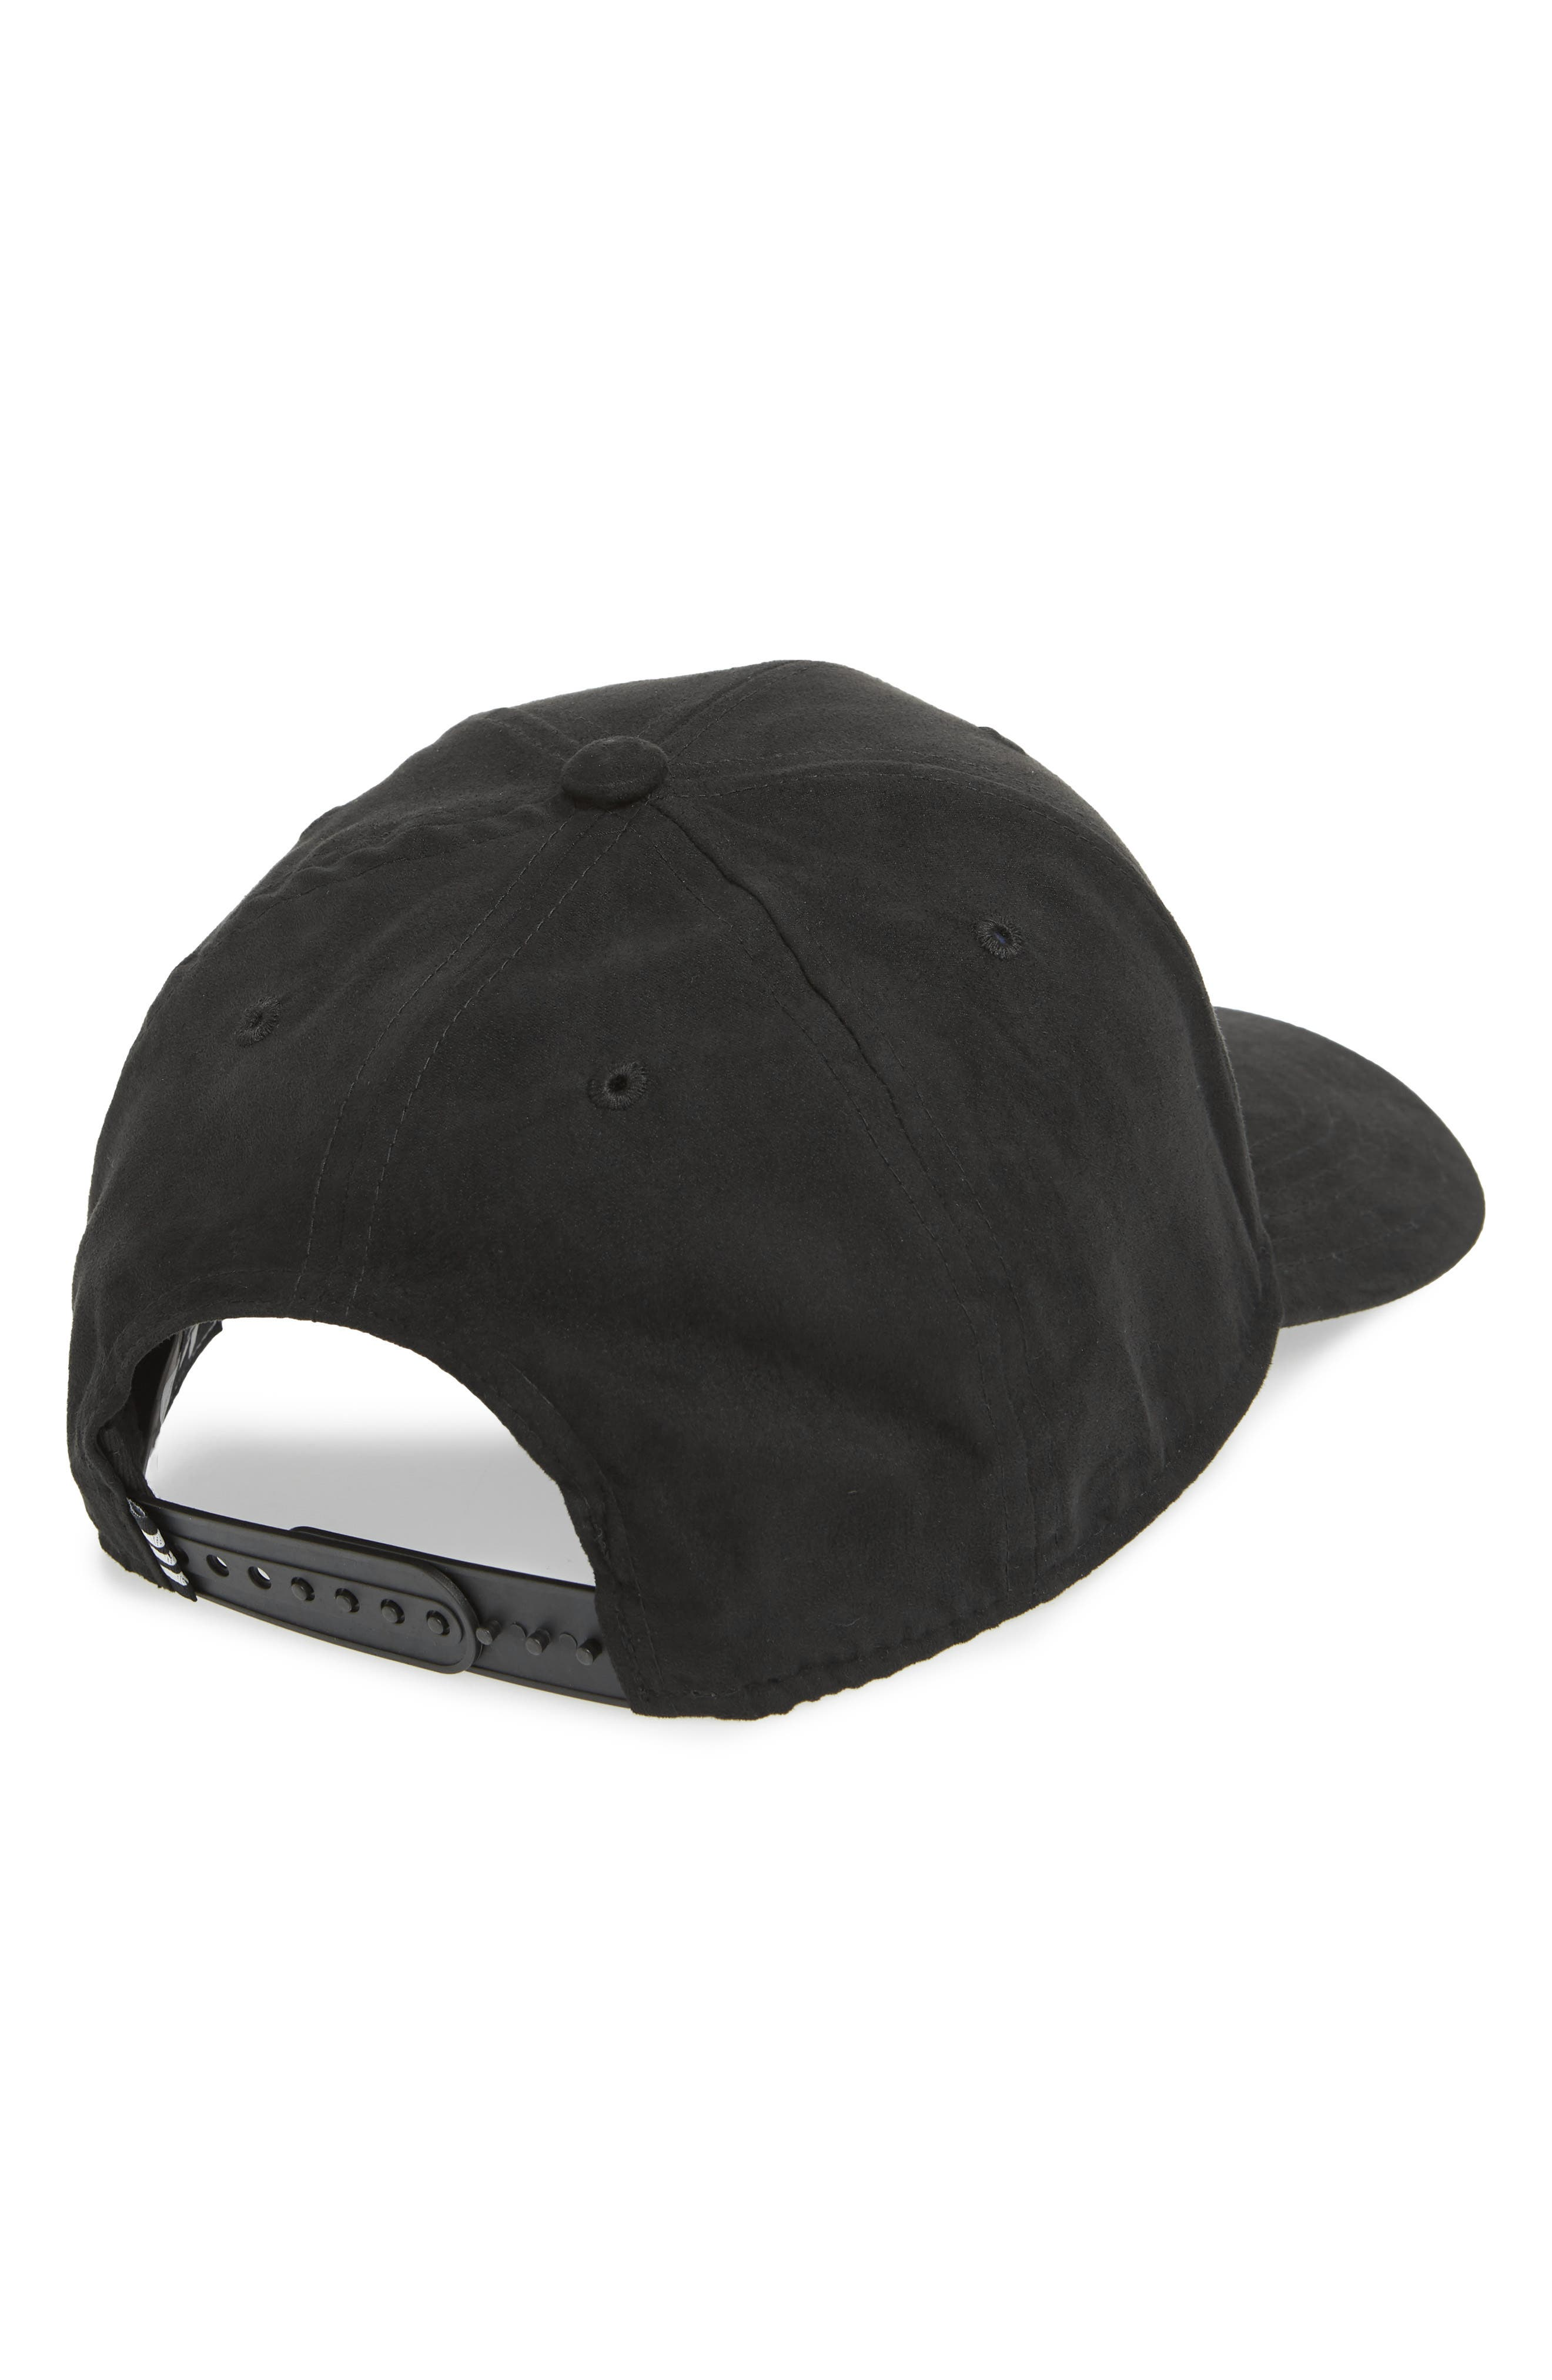 Trefoil Snapback Baseball Cap,                             Alternate thumbnail 2, color,                             BLACK/ WHITE